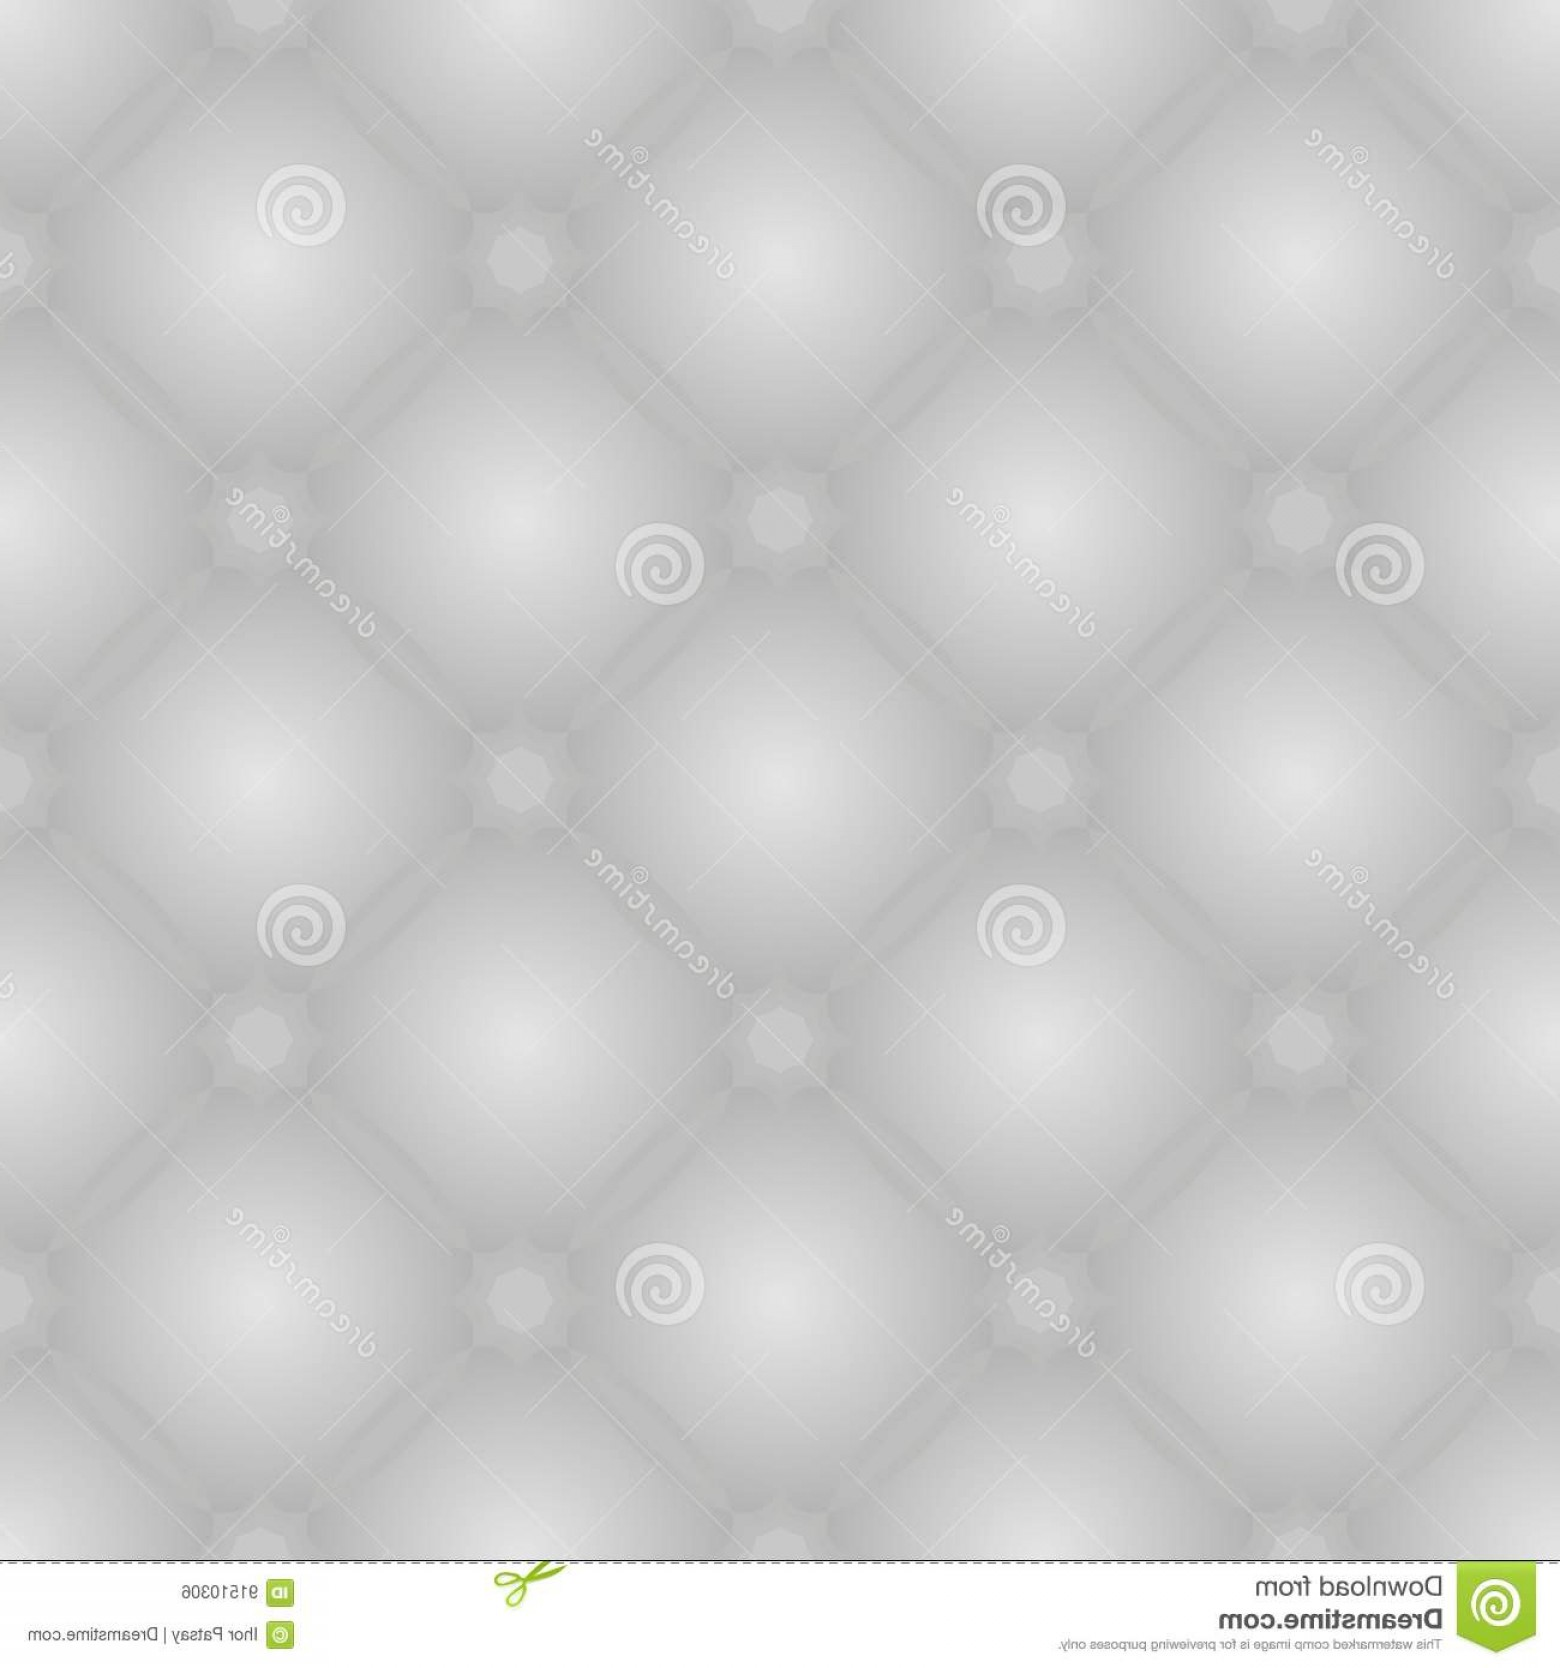 Stock Illustration Seamless Leather Pattern Grey Tufted Texture Background Image